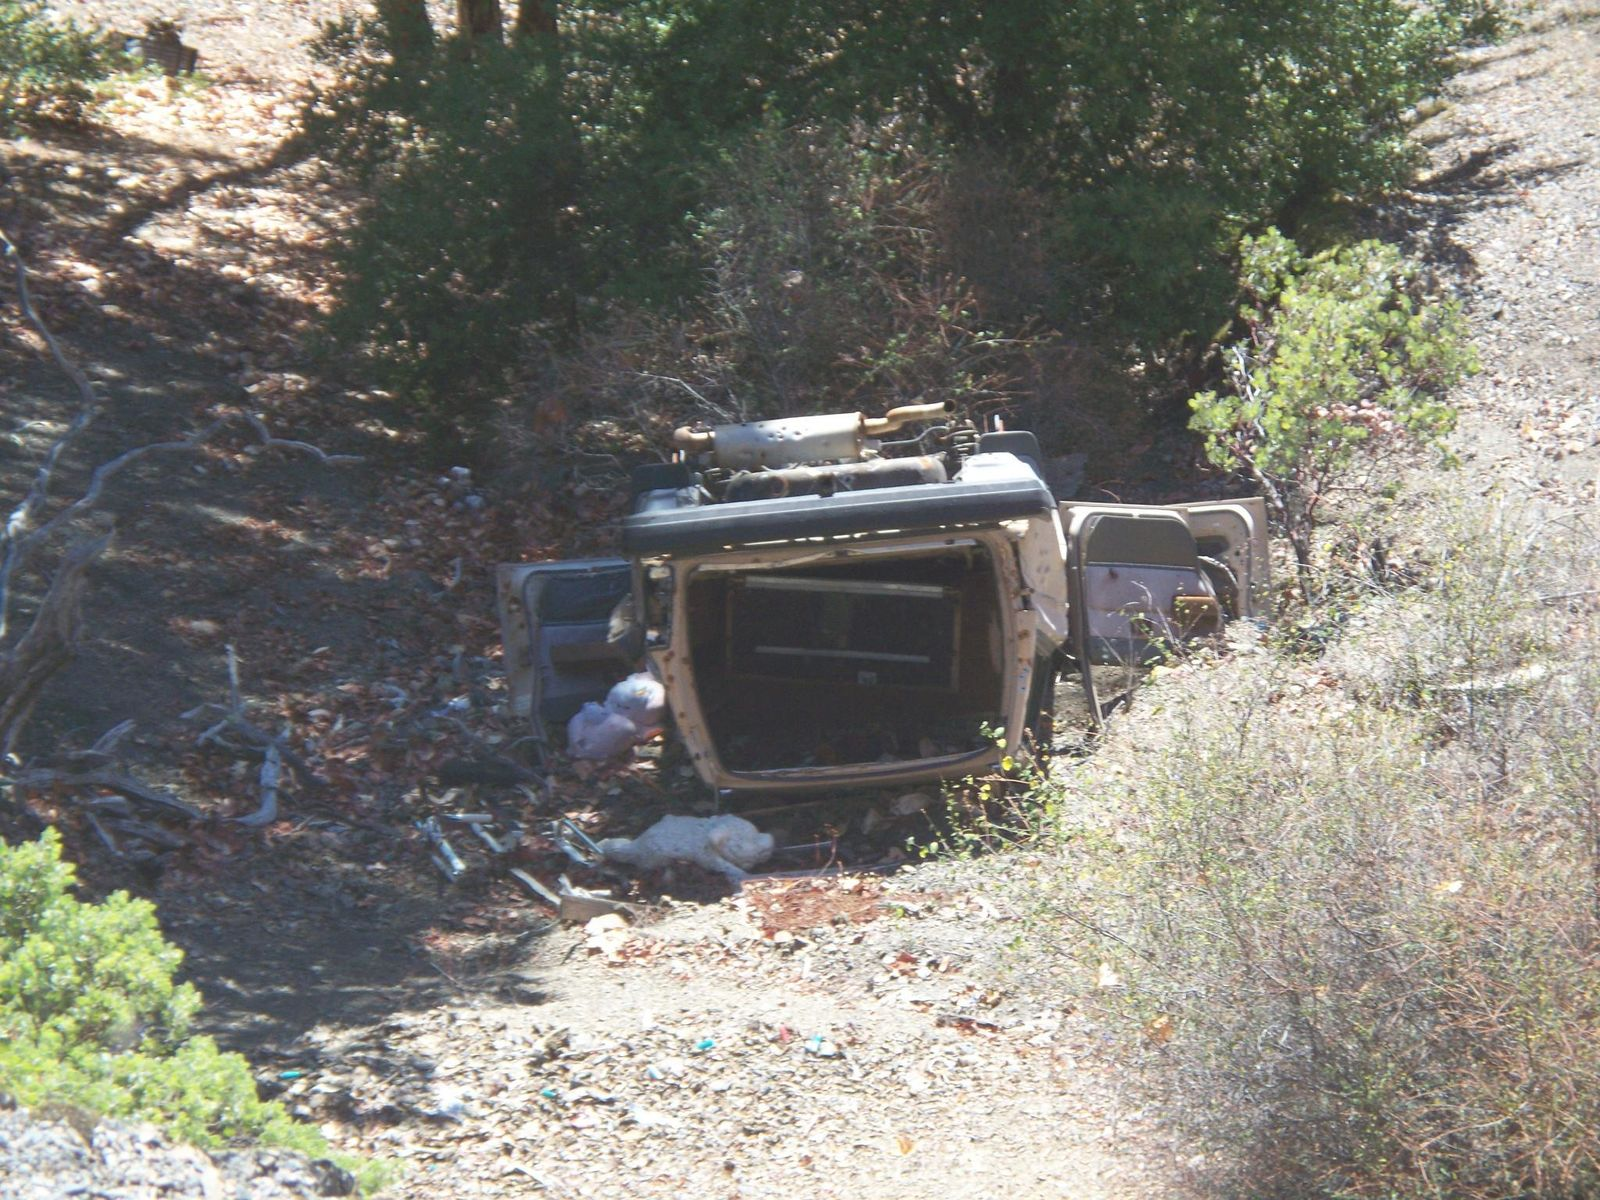 Security measures added to Oregon wilderness in attempts to limit illegal dumping (Seneca)